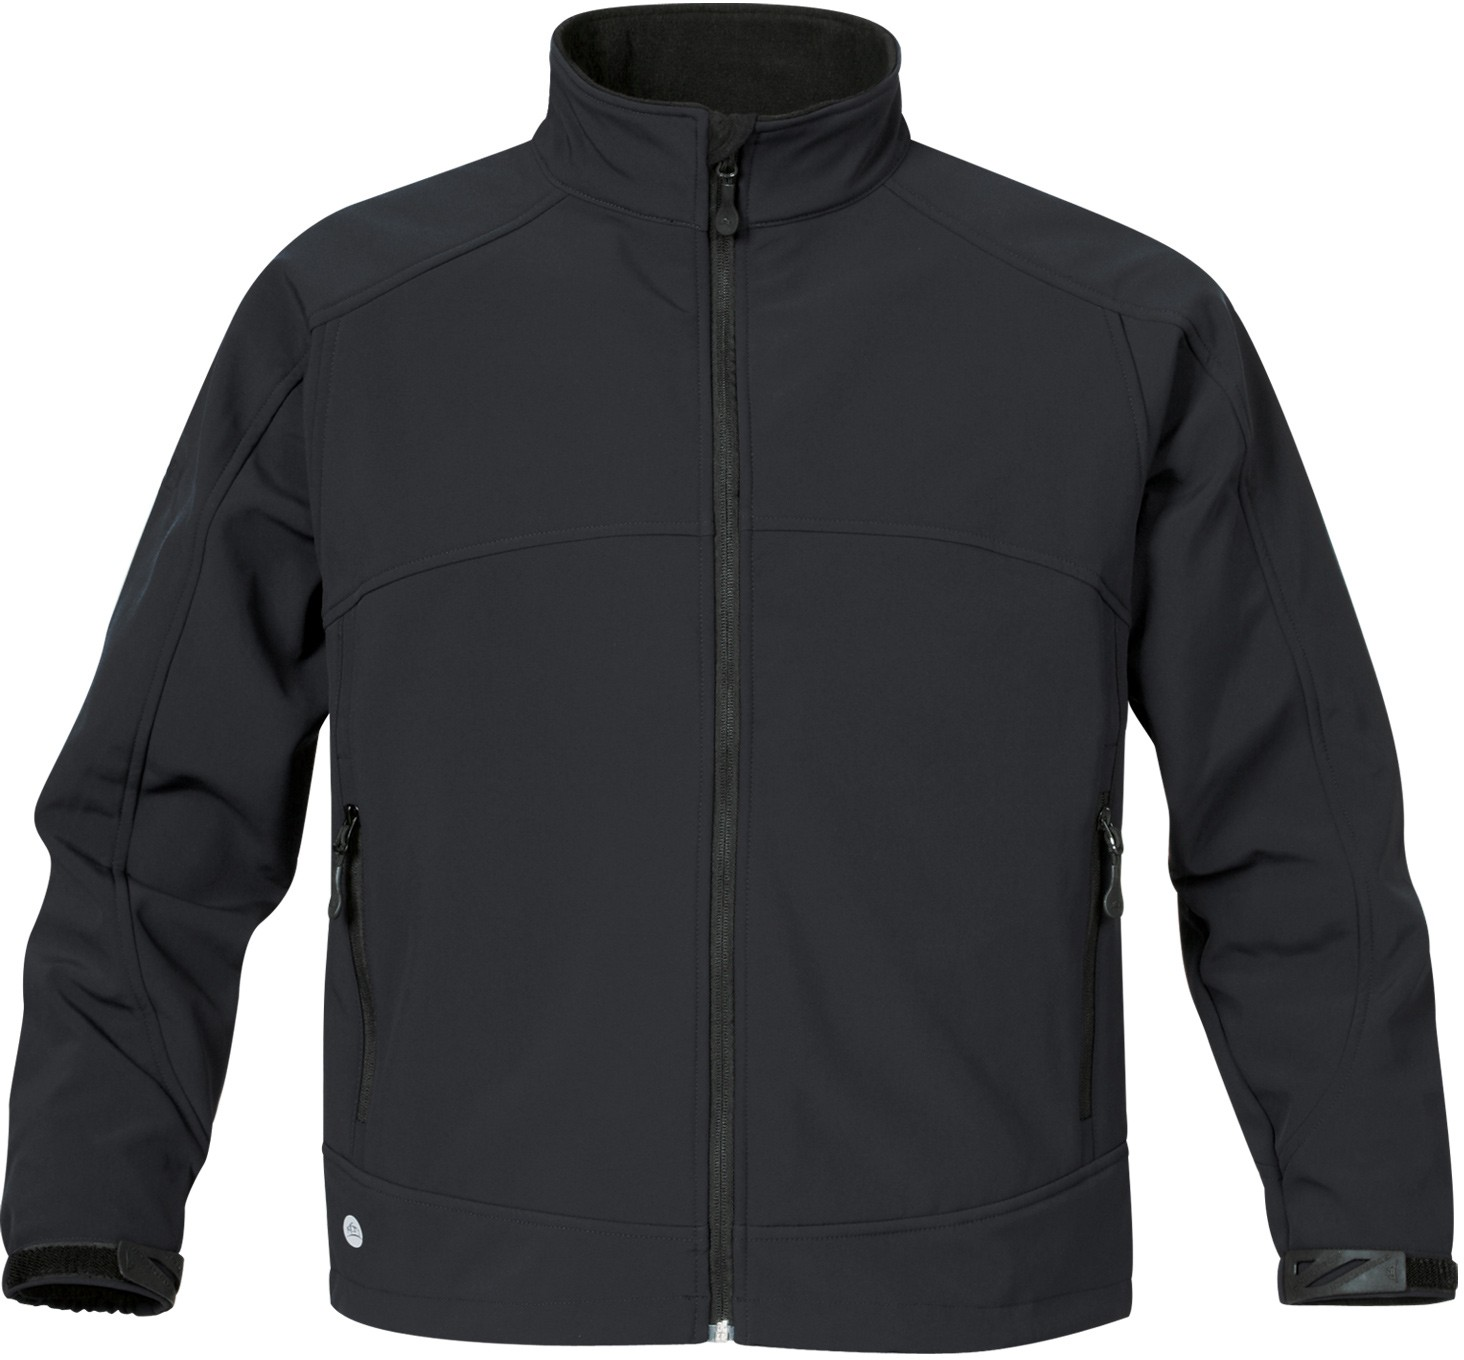 MLJBX-2 - MCRT - Extreme Weather Water Resistant Soft Shell Jacket